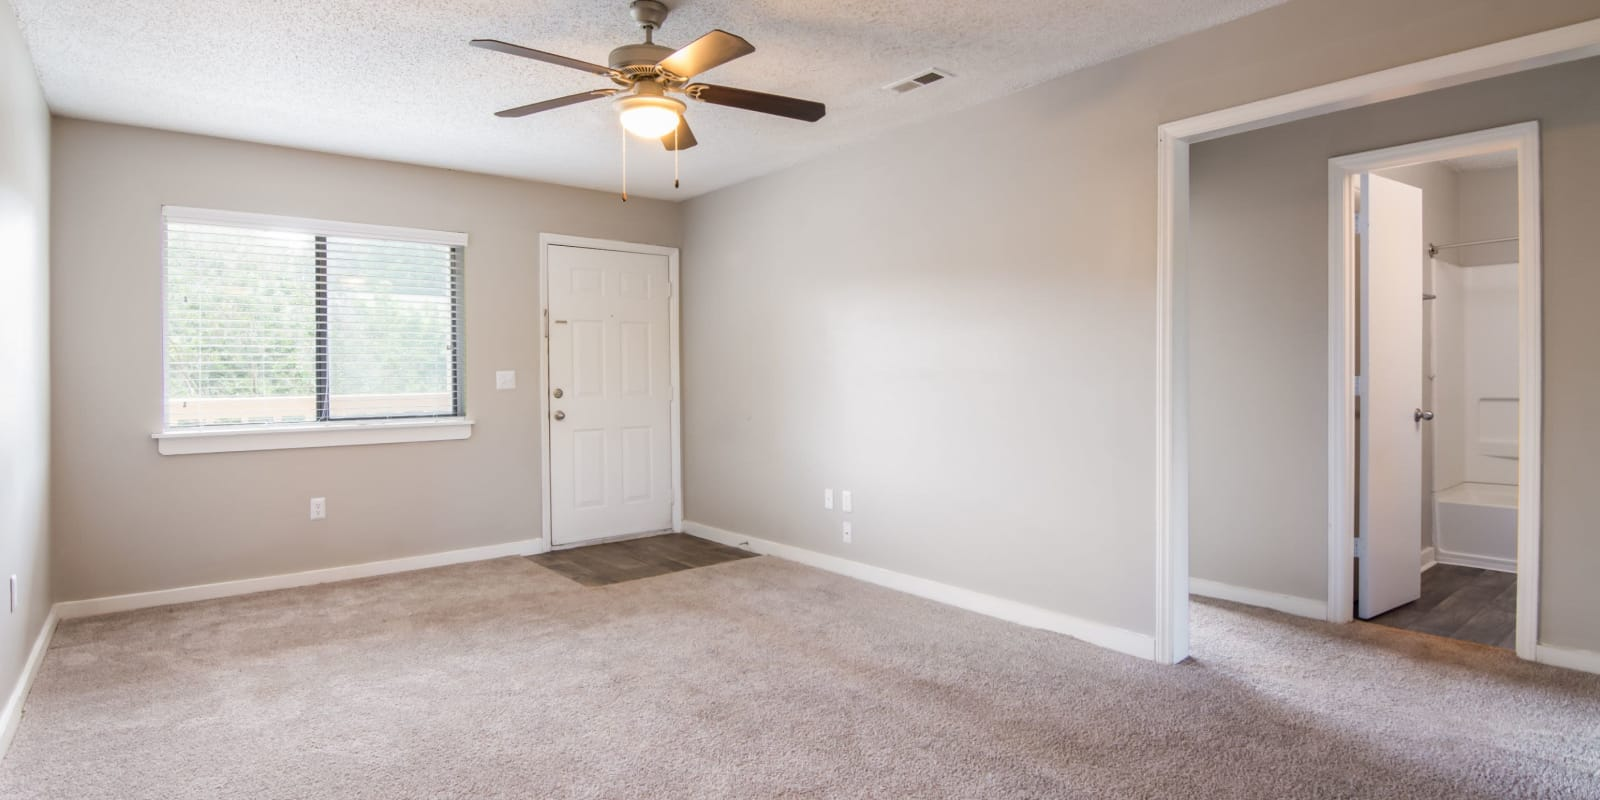 Living room with plush carpeting and a ceiling fan at 1022 West Apartment Homes in Gaffney, South Carolina